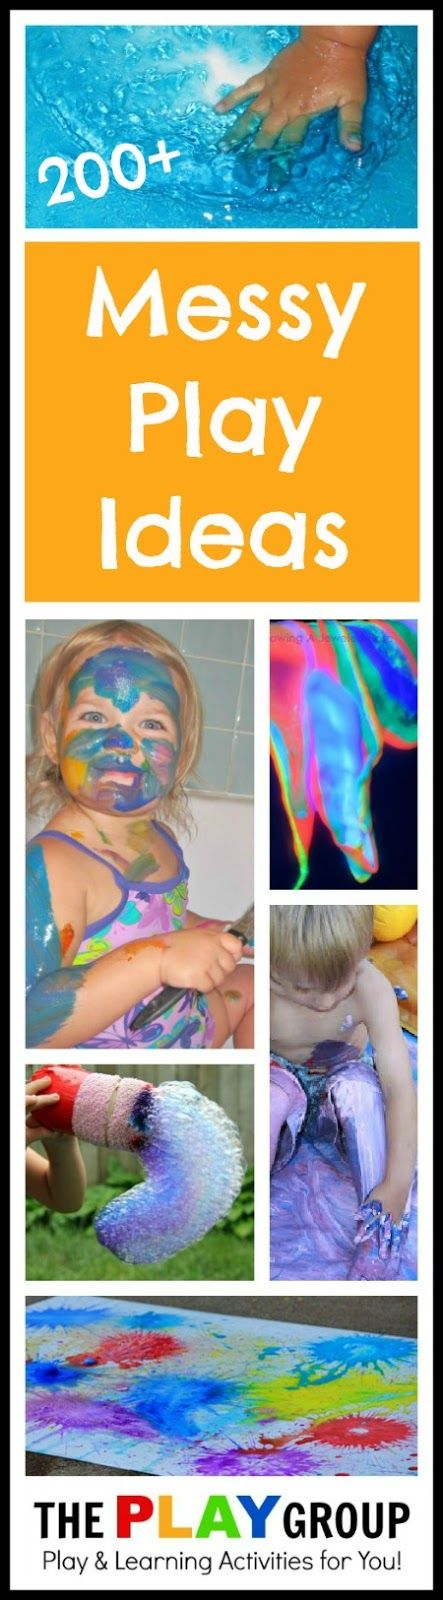 200+ Ideas for Messy Play Ideas from The PLAY Group - The very best ideas for messy play including ideas ranging from simple to extreme, holiday and seasonal themes, messy bath times, messy educational games and so much more!